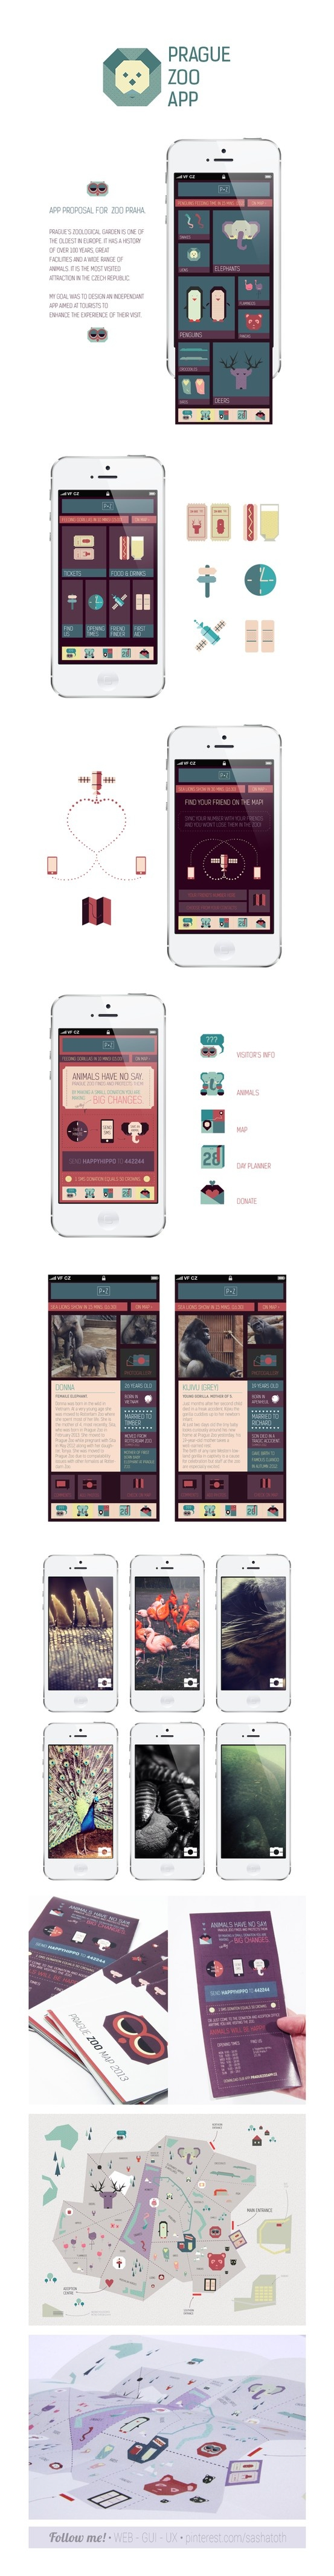 Prague Zoo application concept by Alina Kotova, on Behance